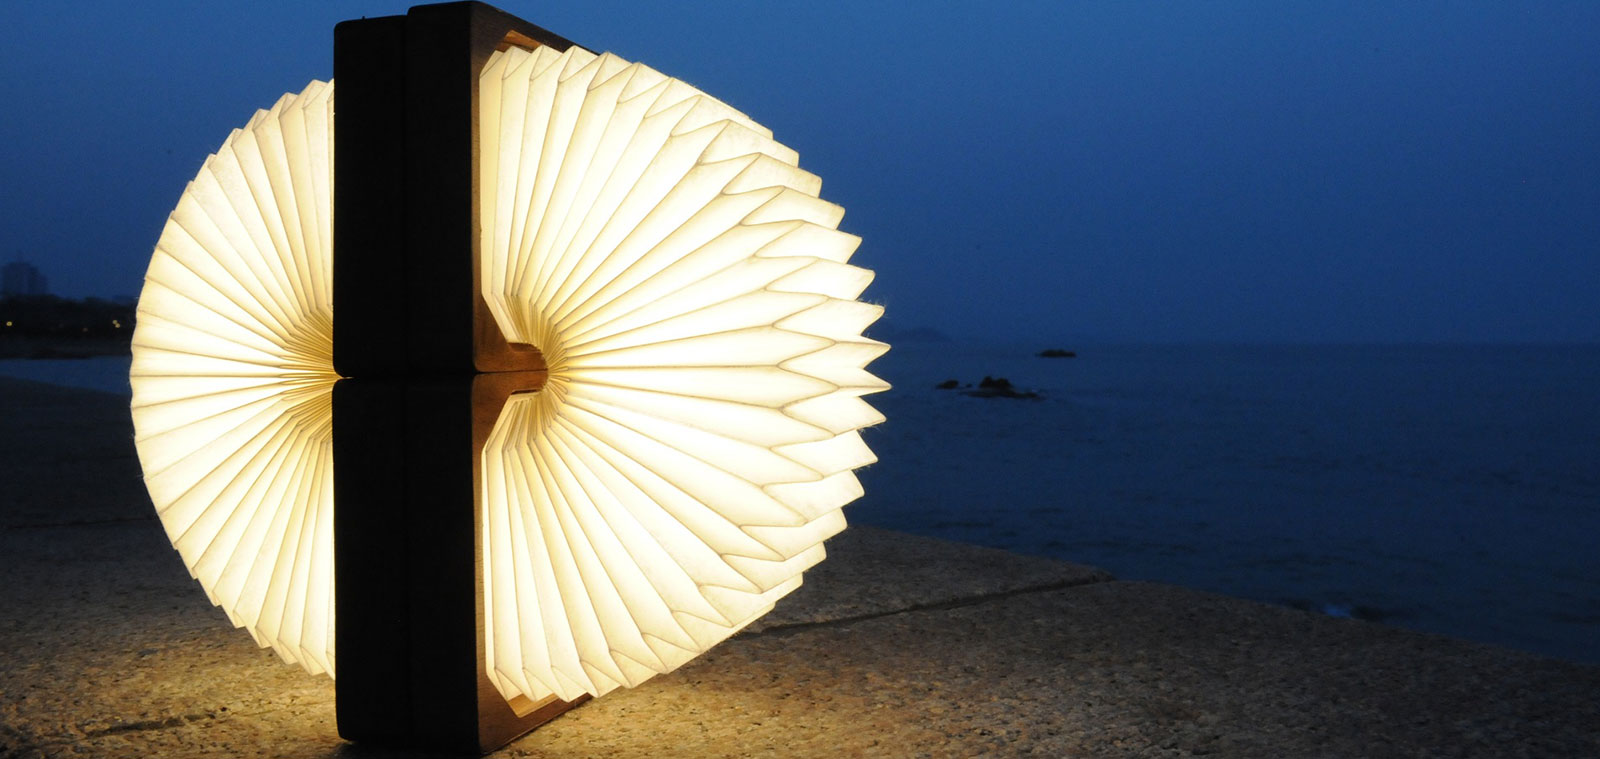 Orilamp Origami Smart Lamp